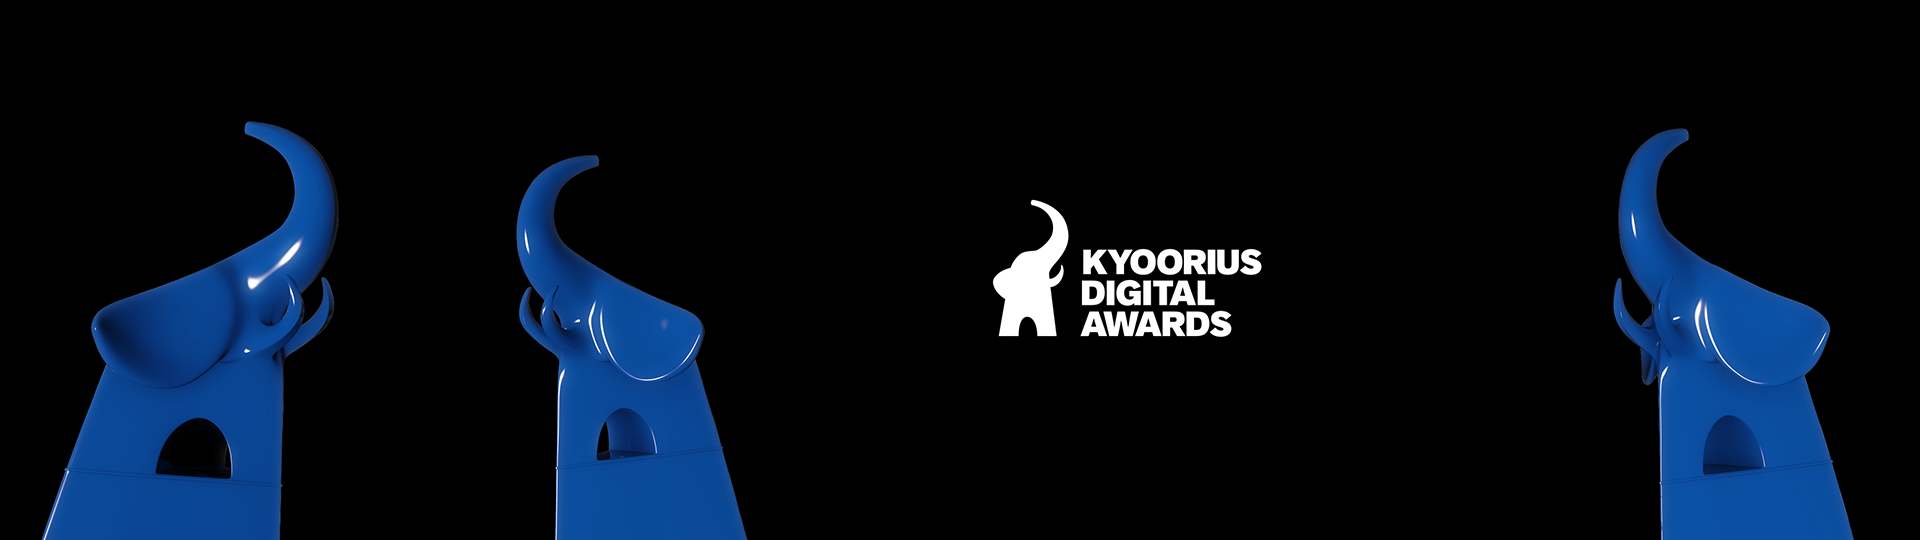 Overall Kyoorius Awards_Elephants_3840x1080